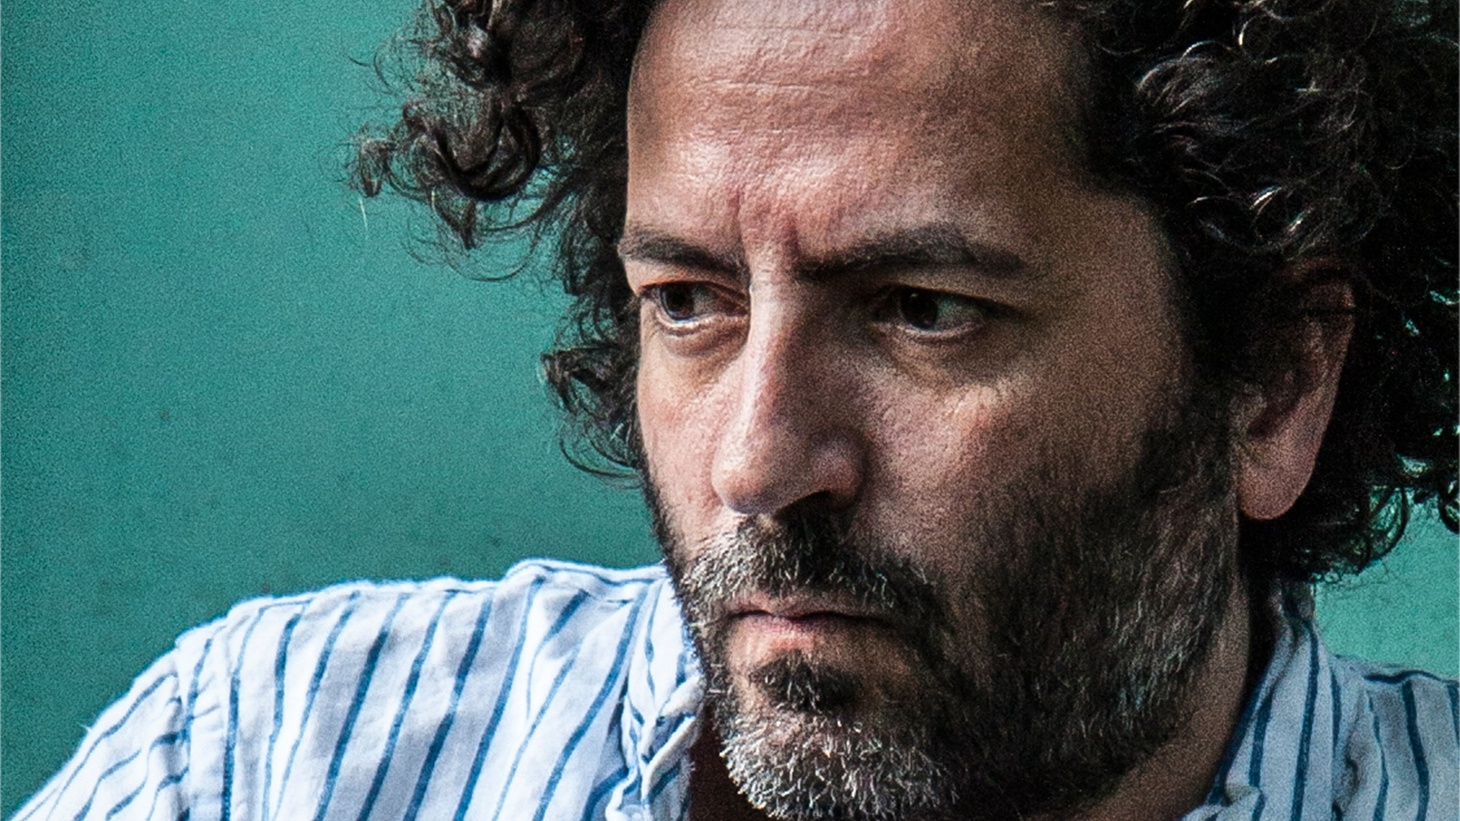 Destroyer is the long-running solo project from The New Pornographer's Dan Bejar. Destroyer's 12th album ken showcases the evocative songwriting he is known for and we're excited to welcome the band for a live set.